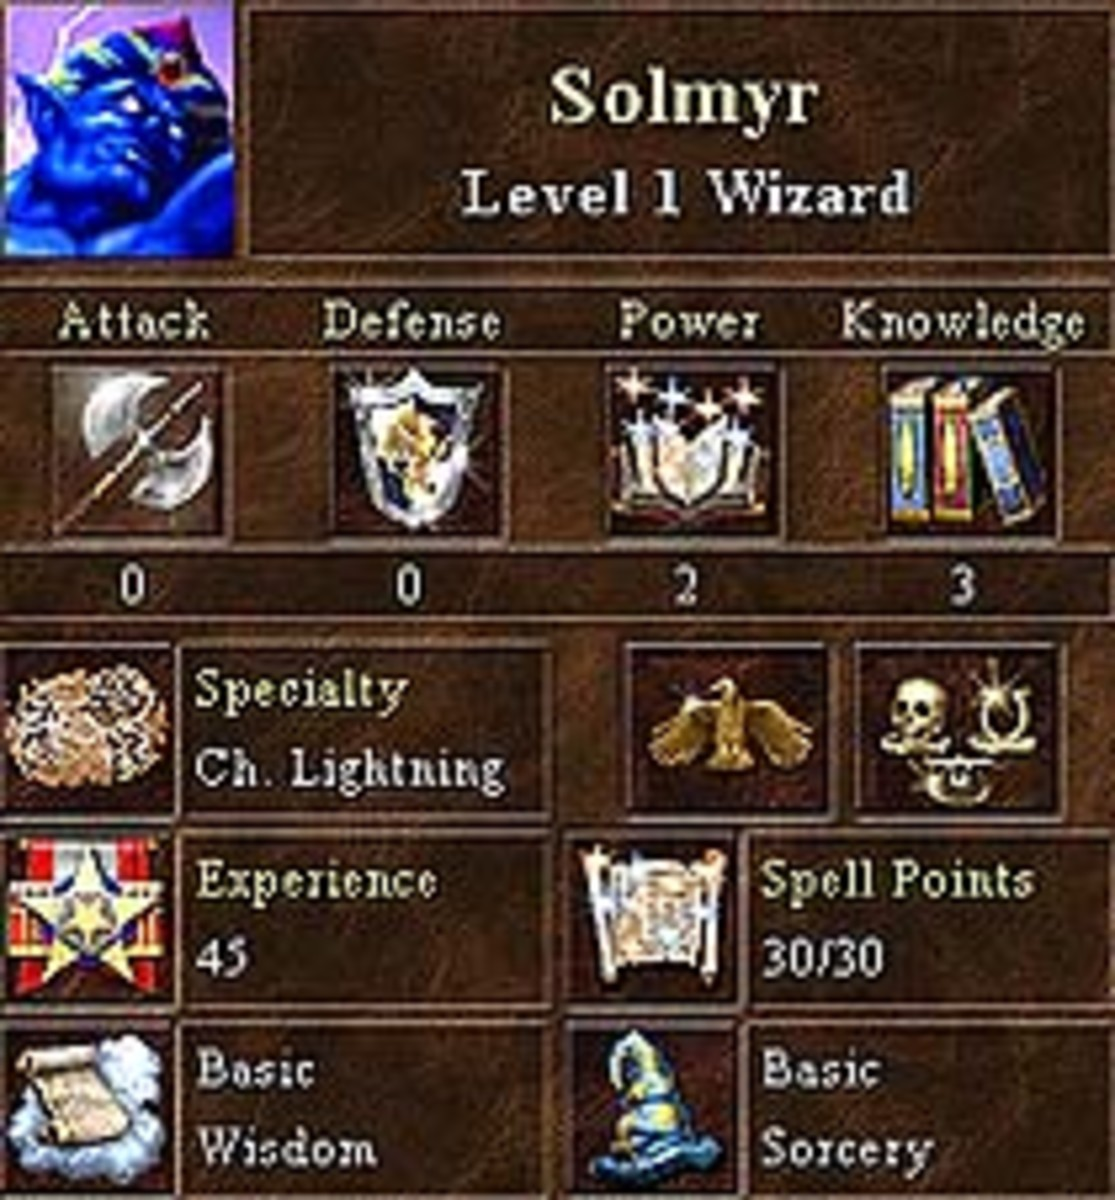 Solmyr has the ability to summon a chain of lightning bolts that easily decimate the opposition.